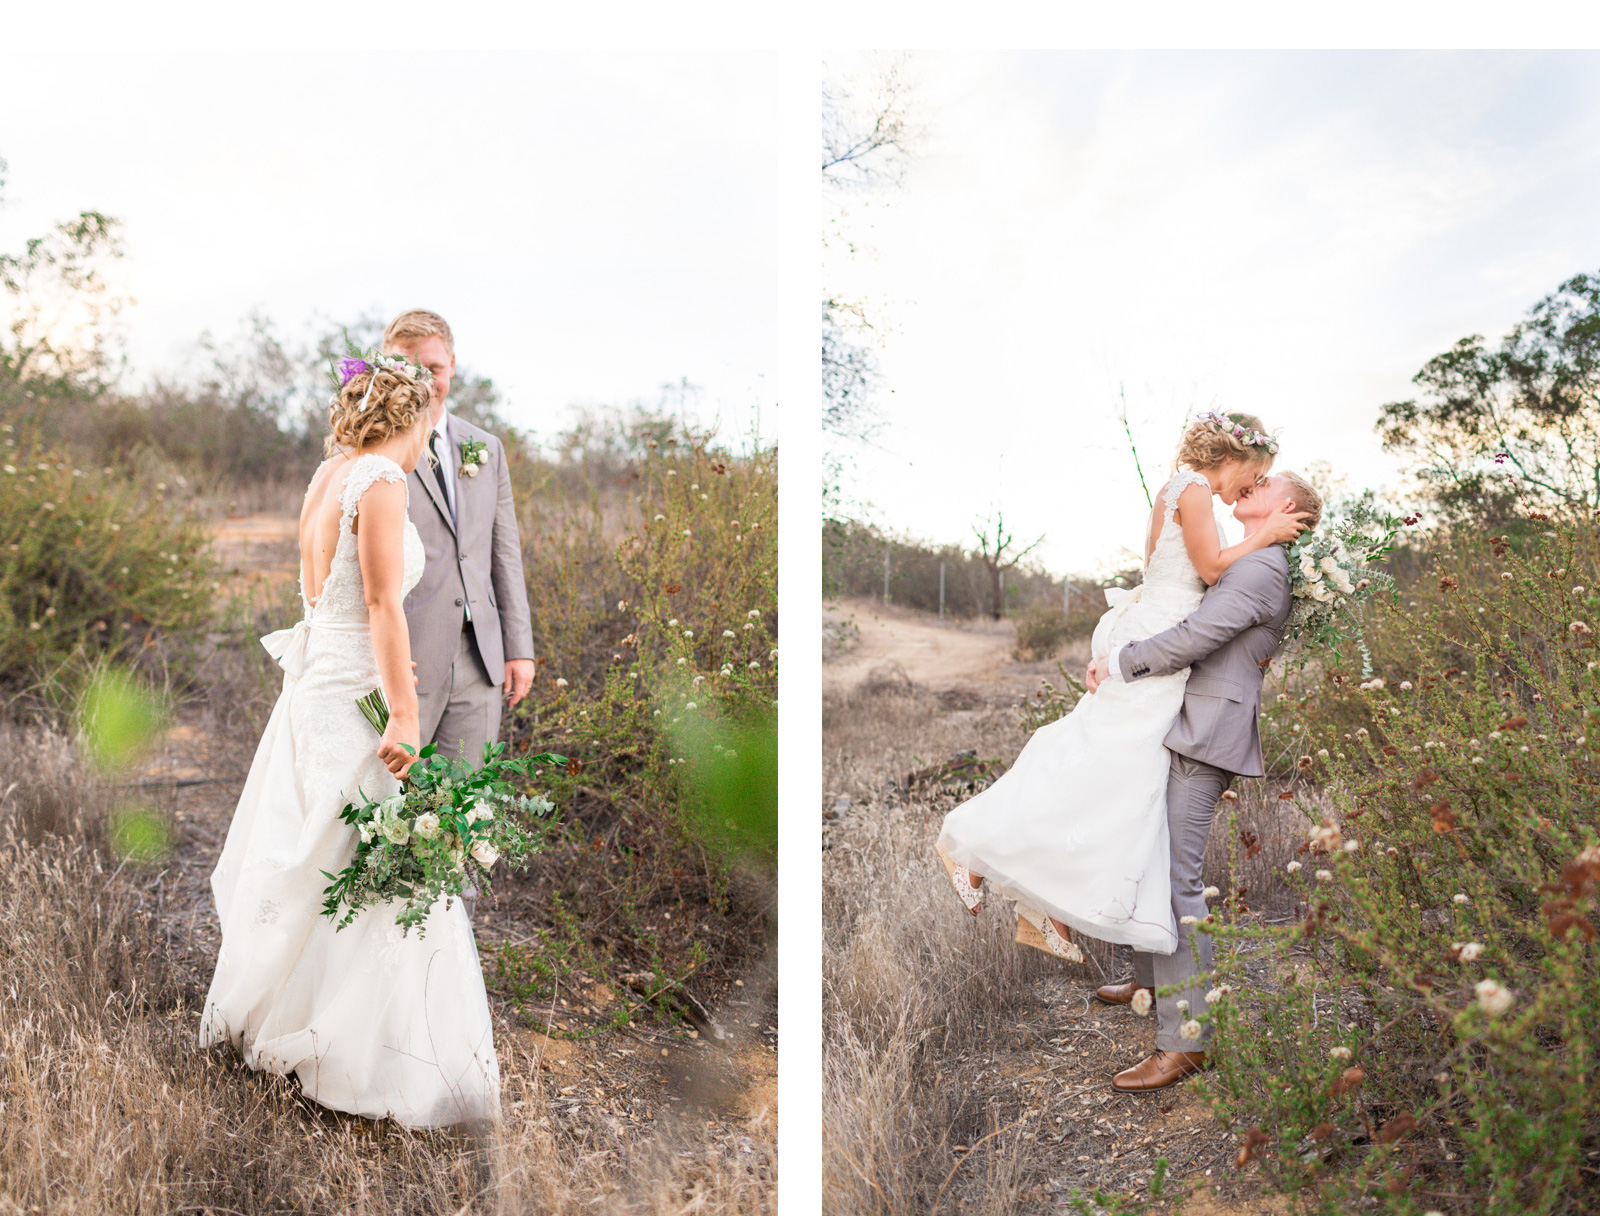 Black-Walnut-Creek-San-Diego-Wedding-Natalie-Schutt-Photography_05.jpg